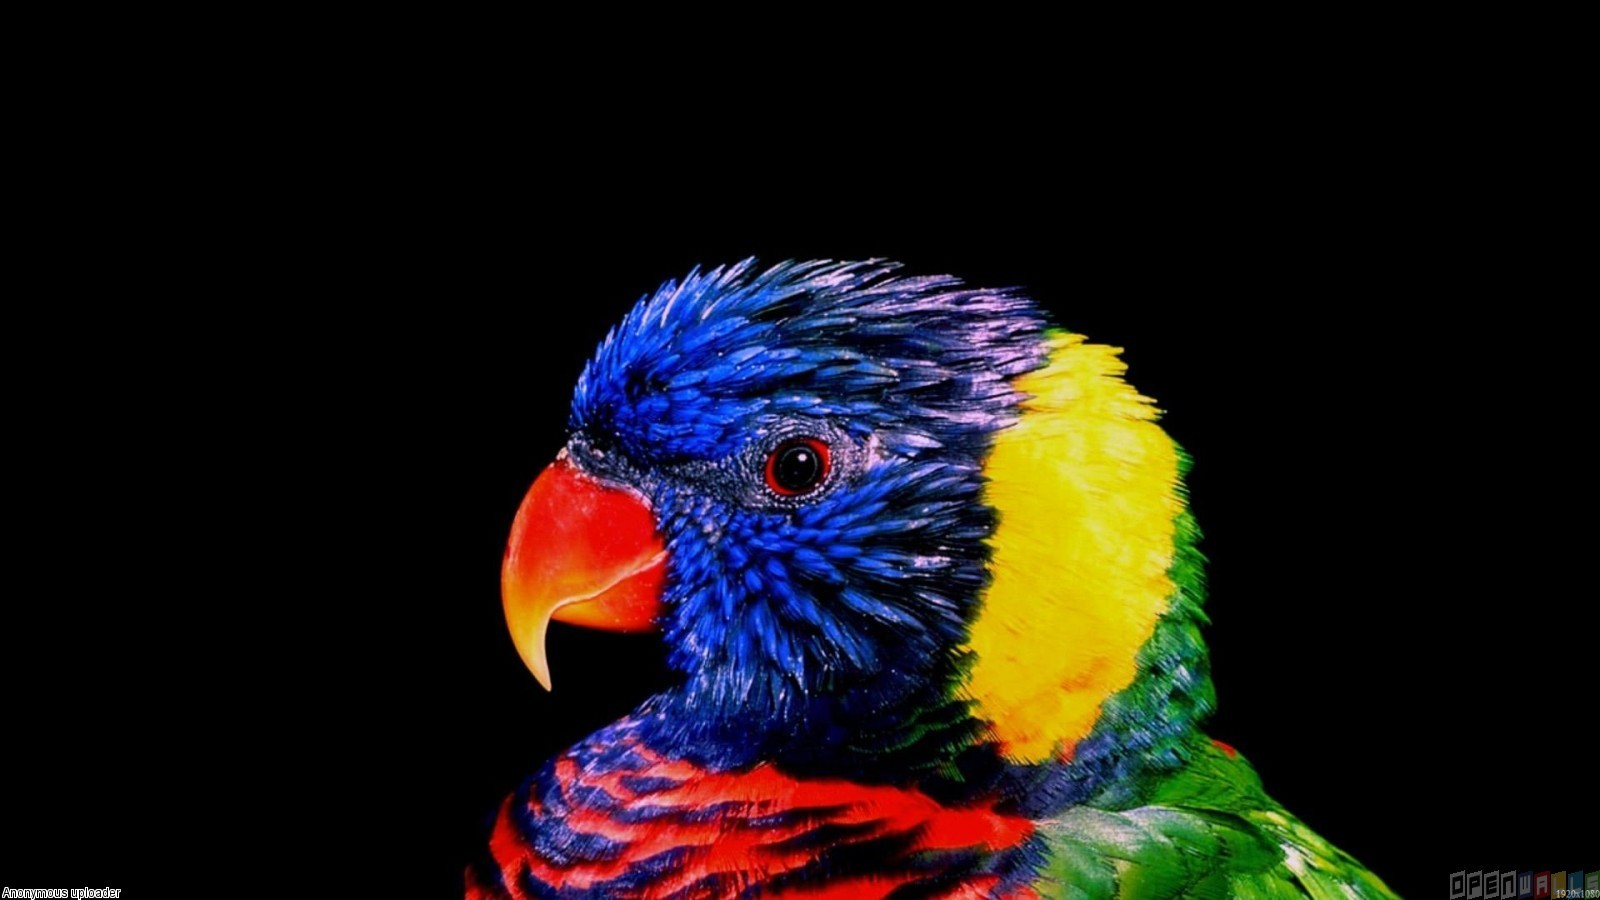 Very colorful parrot wallpaper 4444   Open Walls 1600x900